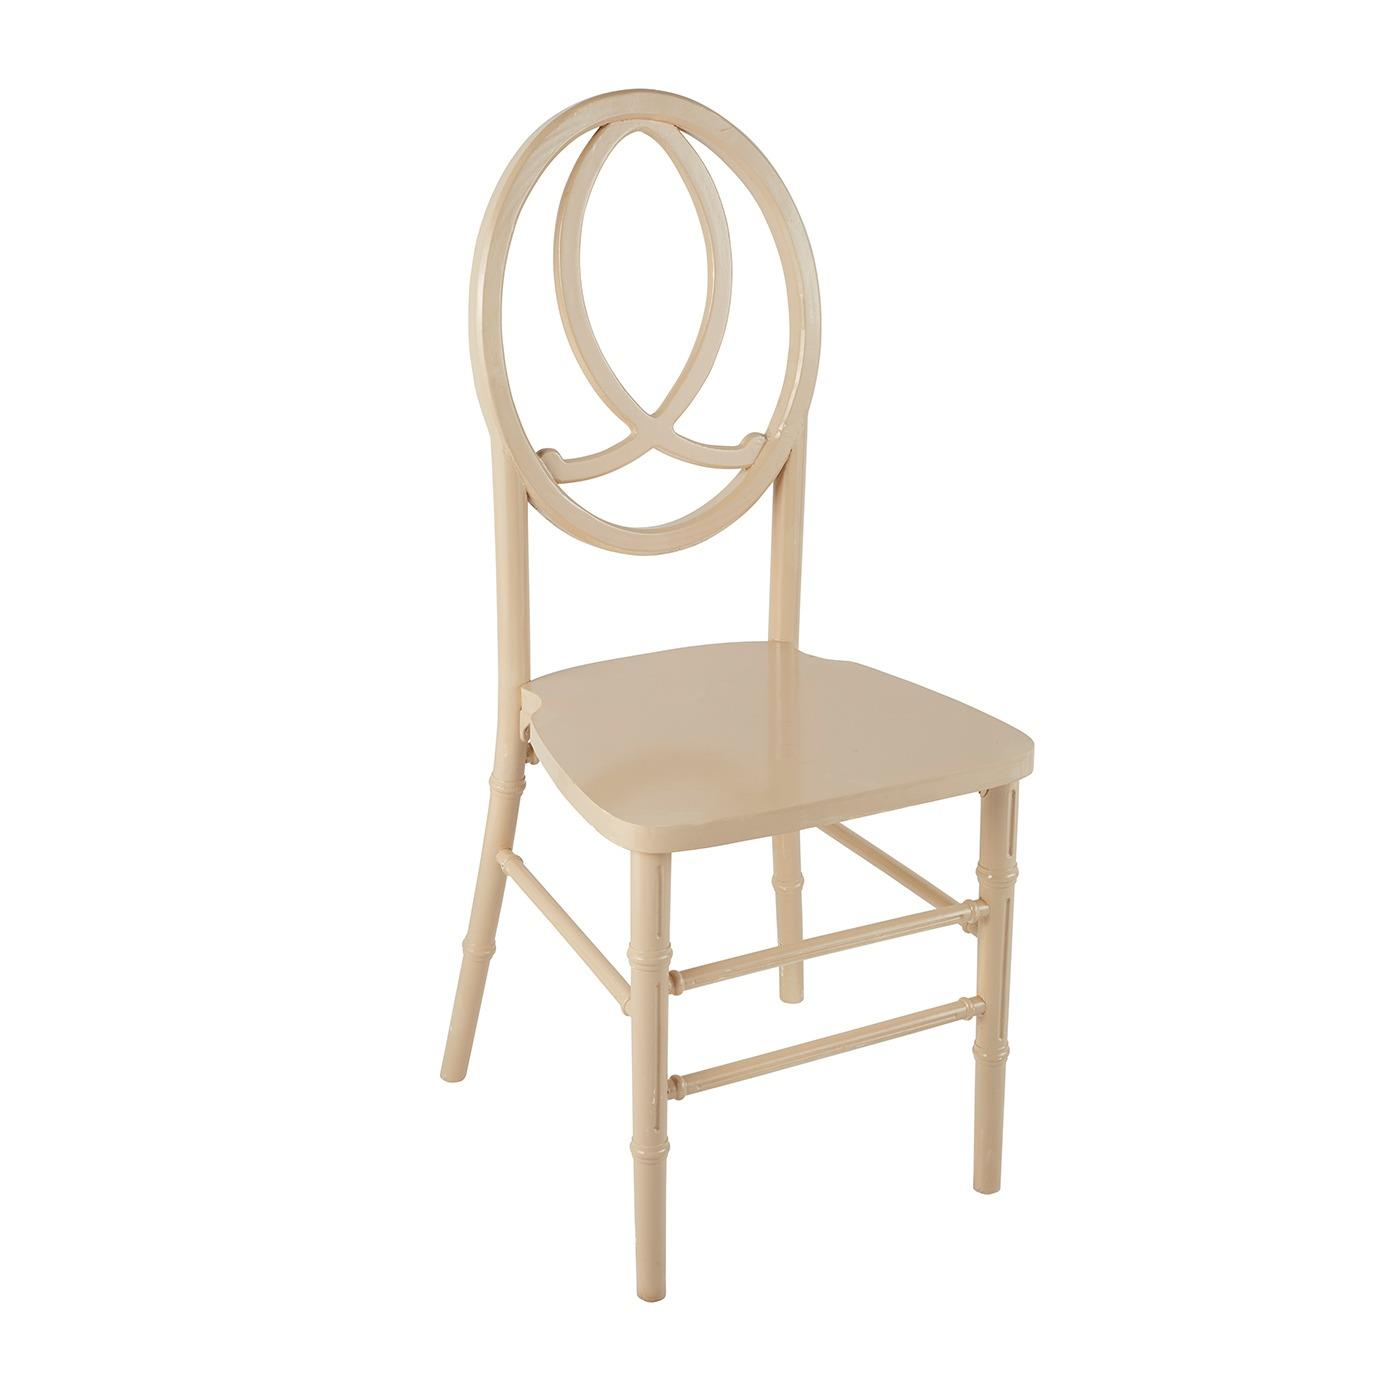 Omega Chair - Champagne